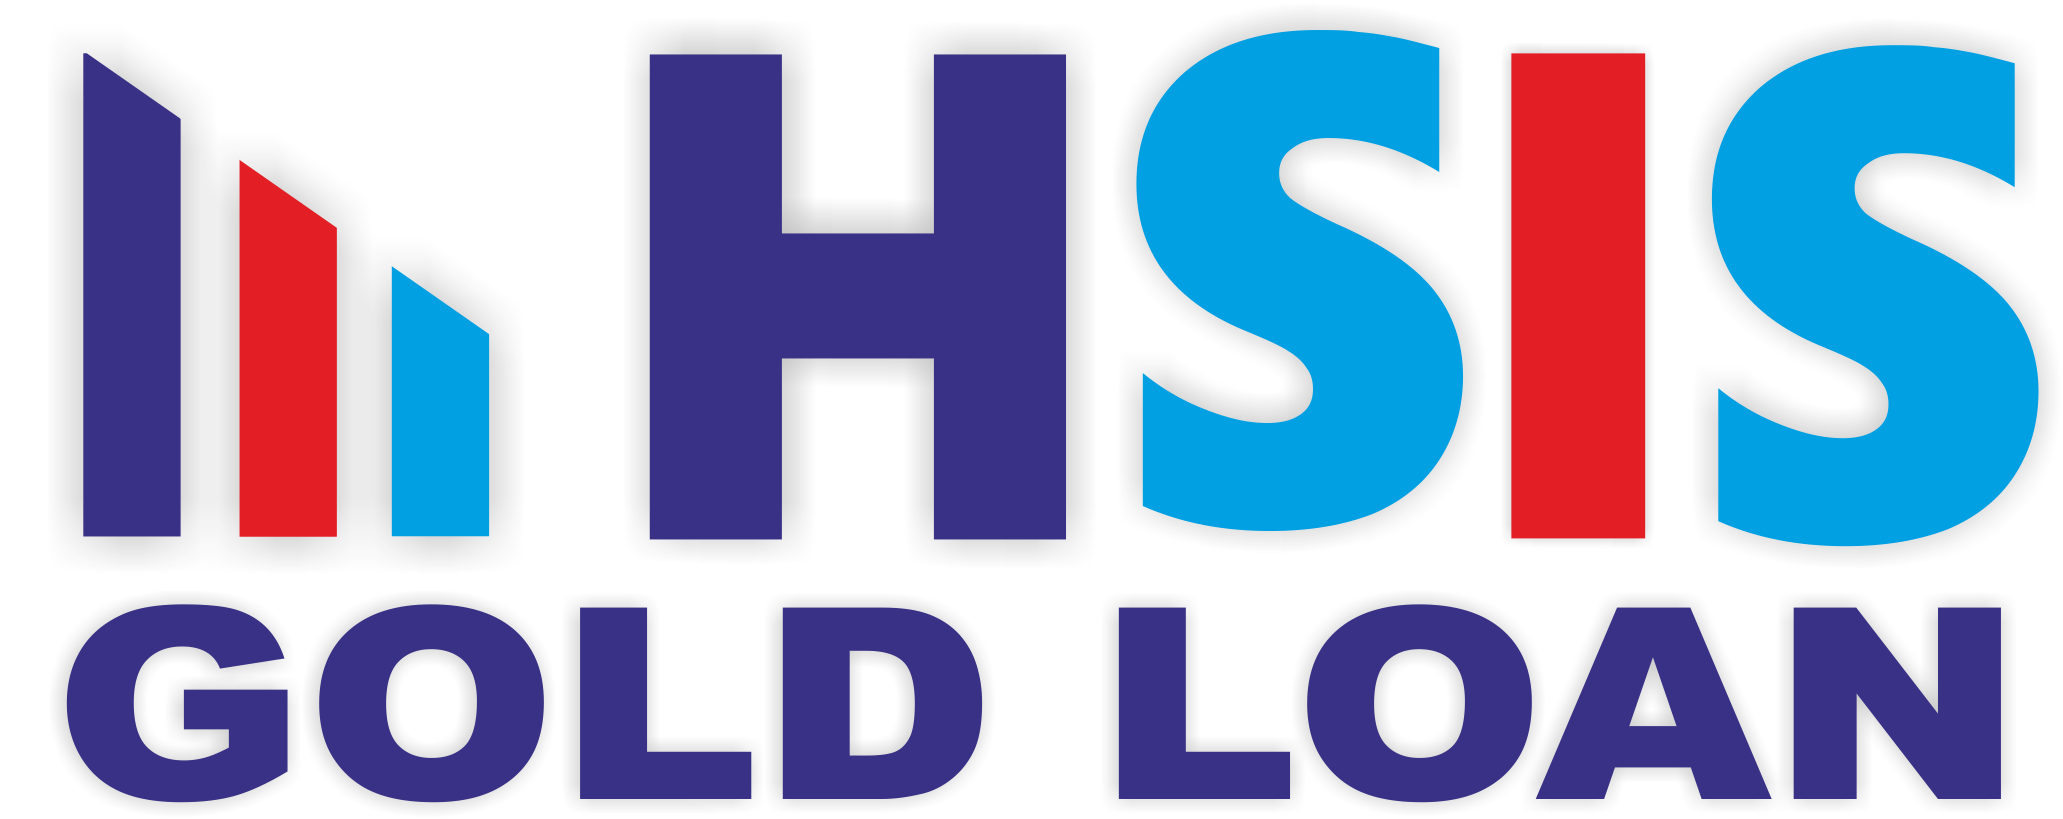 HSIS GOLD LOAN